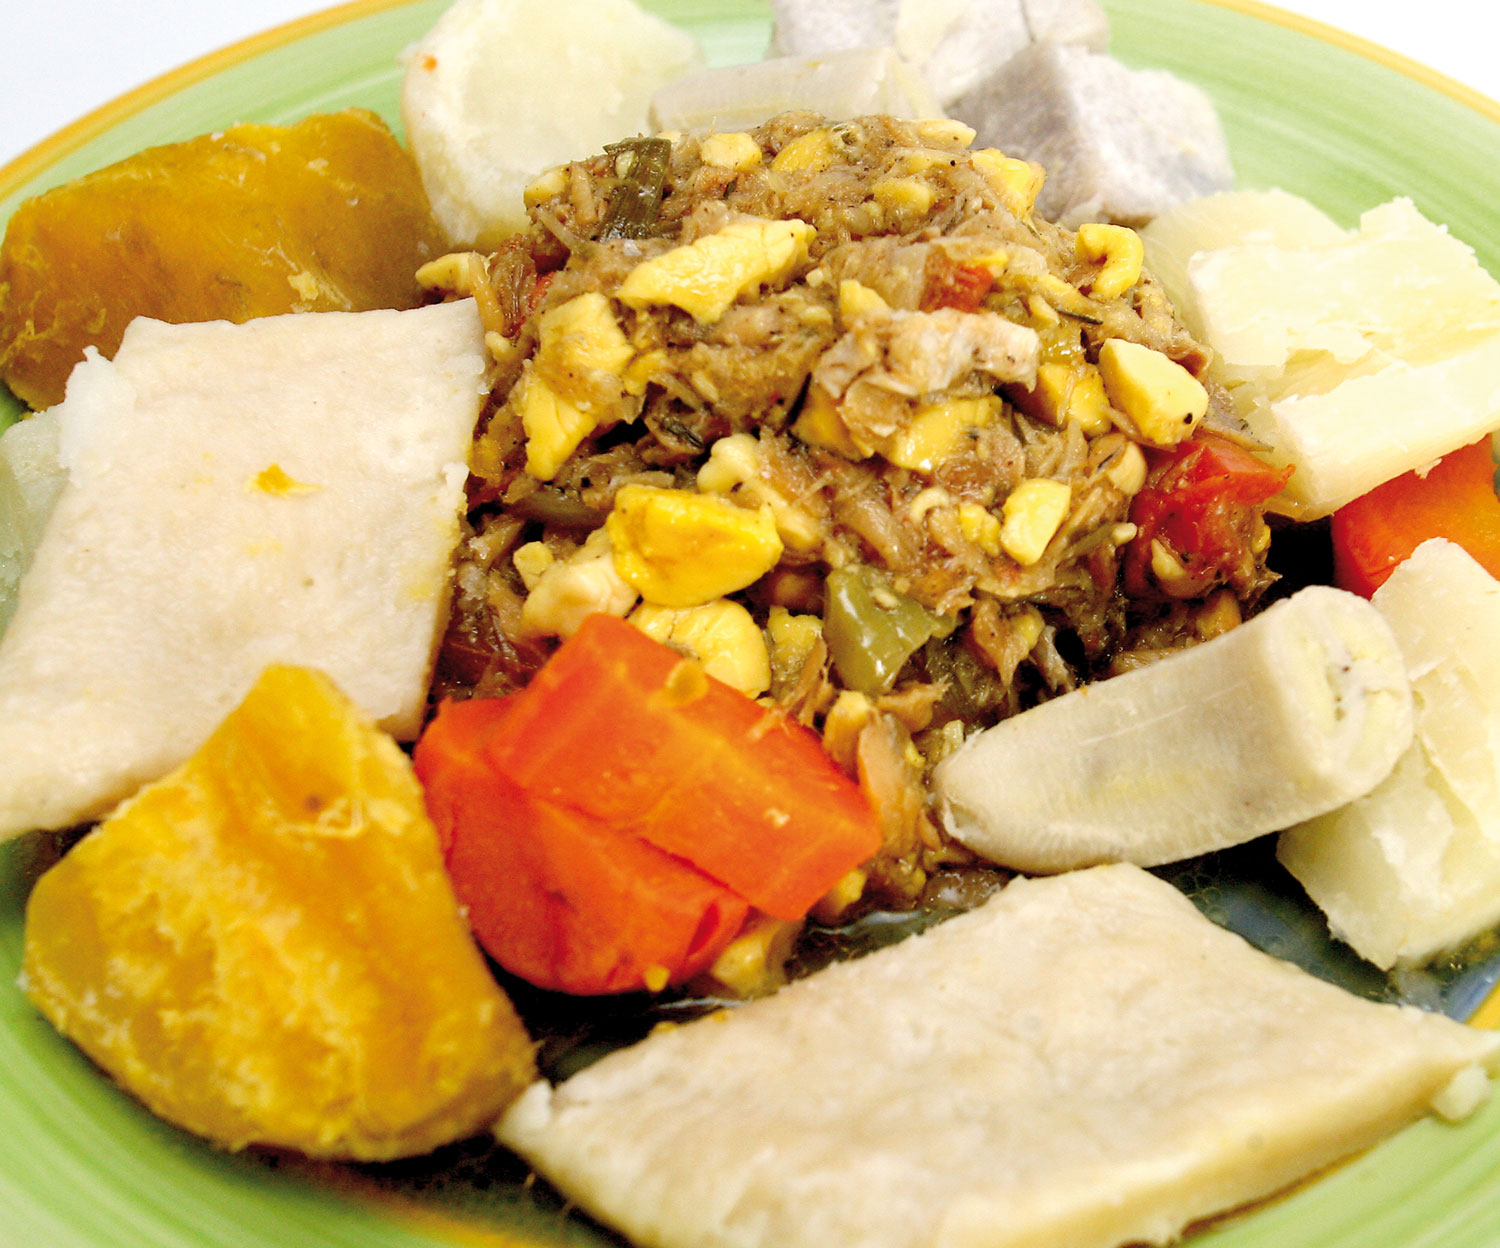 Ackee and saltfish with dumplings and provision. Photograph by Shirley Bahadur